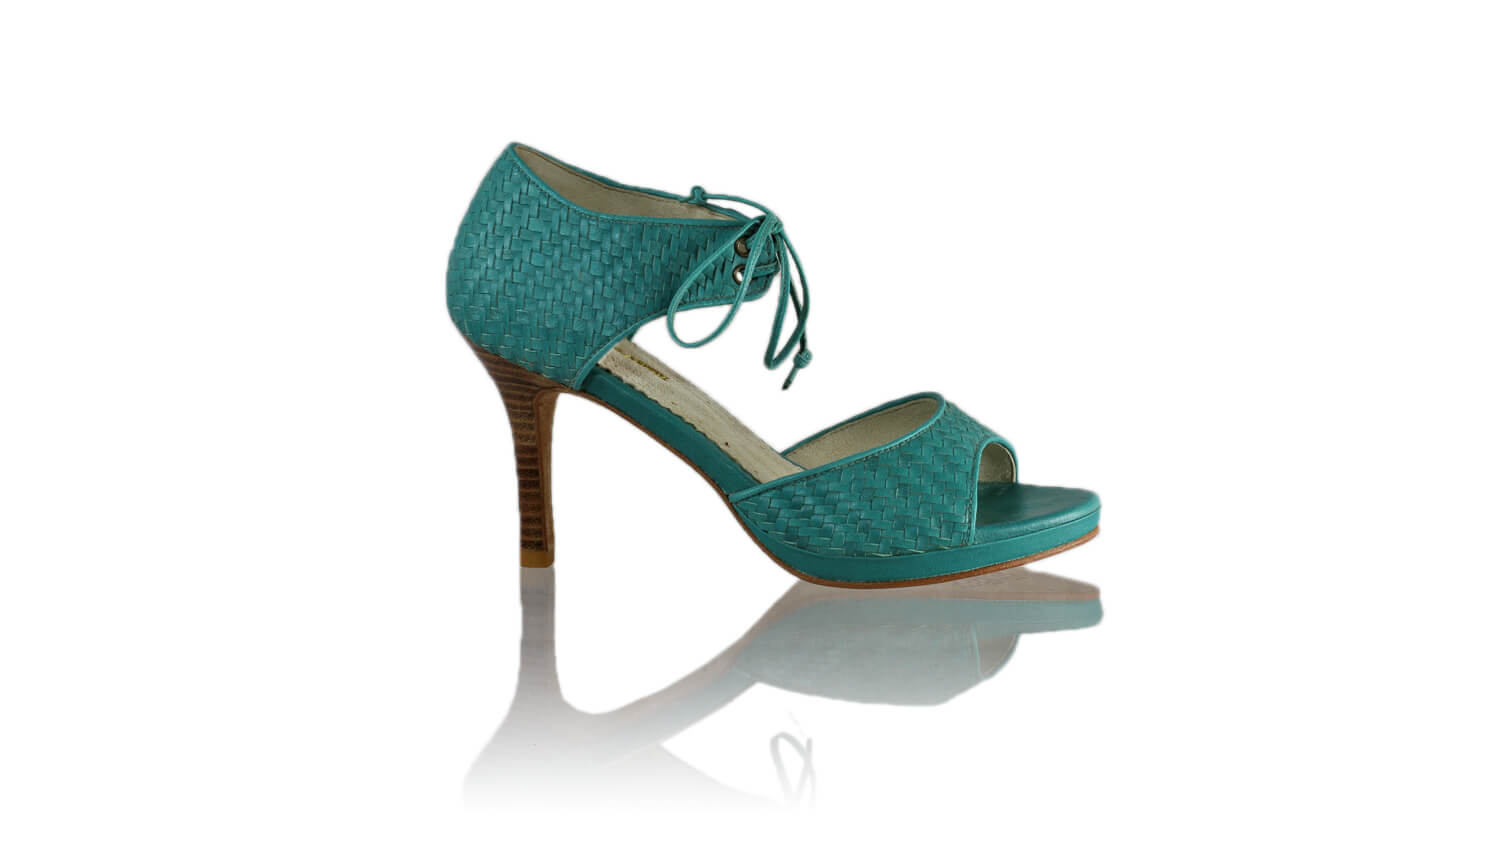 Leather-shoes-Andrea Woven 90mm SH PF - Dark Aqua-sandals higheel-NILUH DJELANTIK-NILUH DJELANTIK